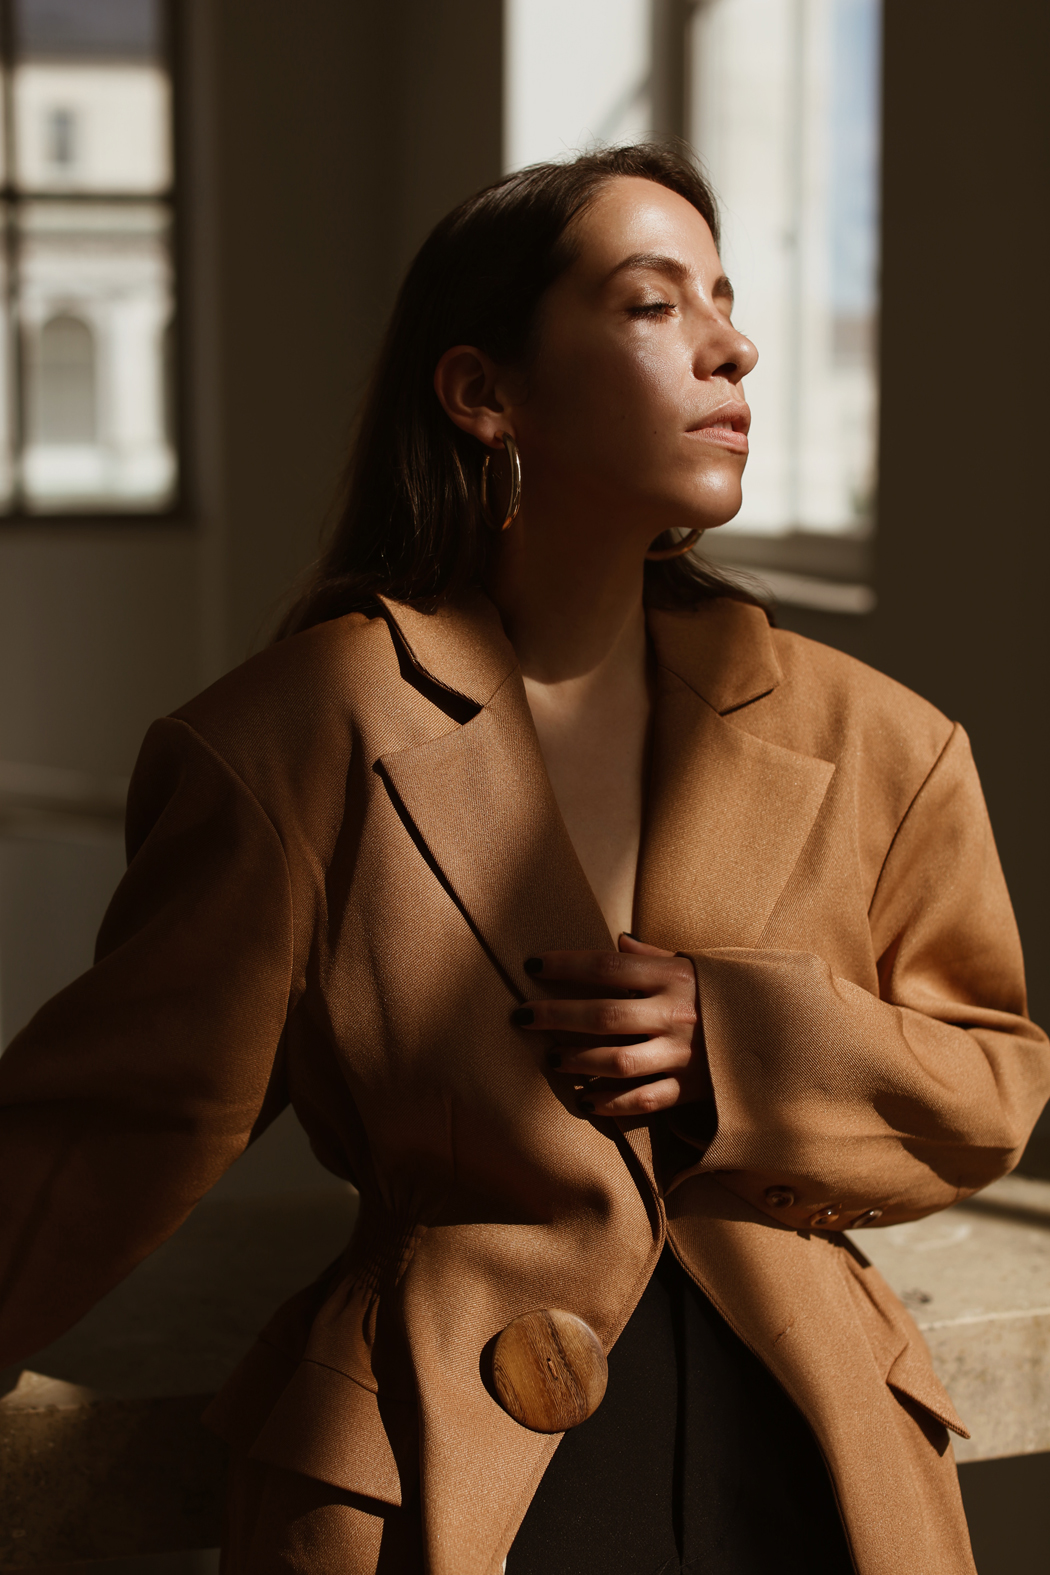 The Look: Outfit wearing the JH ZANE Pina Jacket - by Fiona Dinkelbach